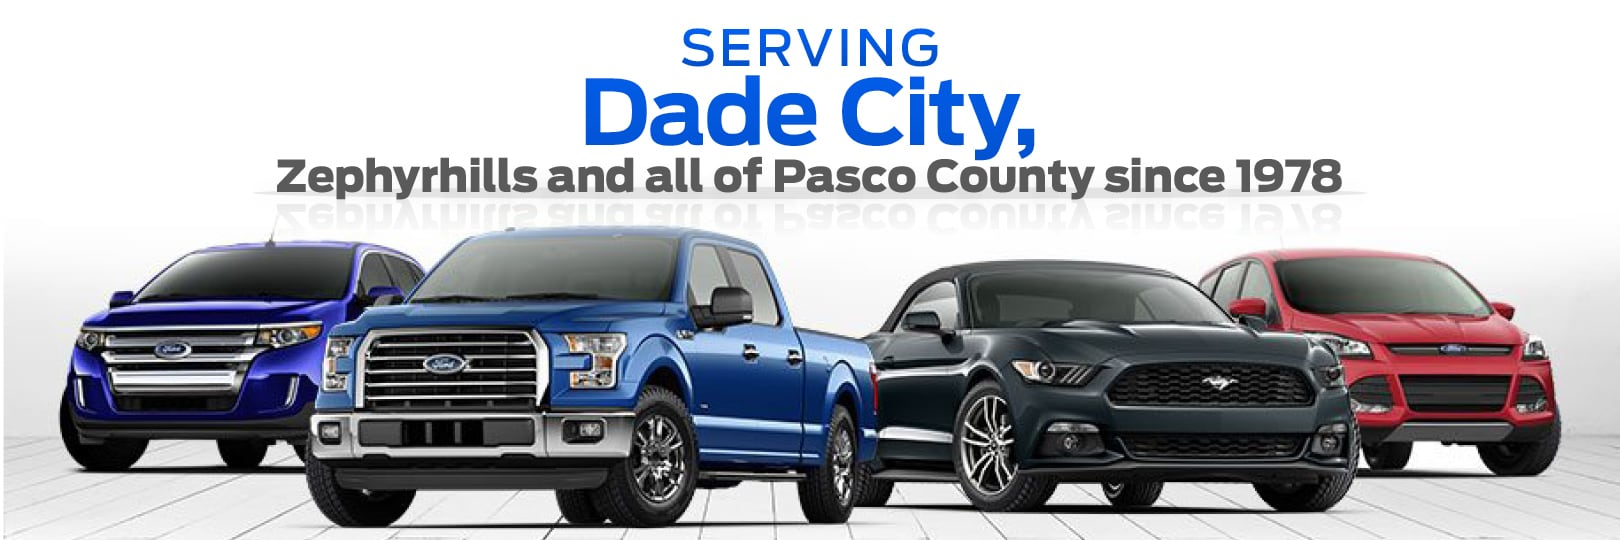 Jarrett Ford Dade City New Ford Dealership In Dade City FL - Dade city fl car show